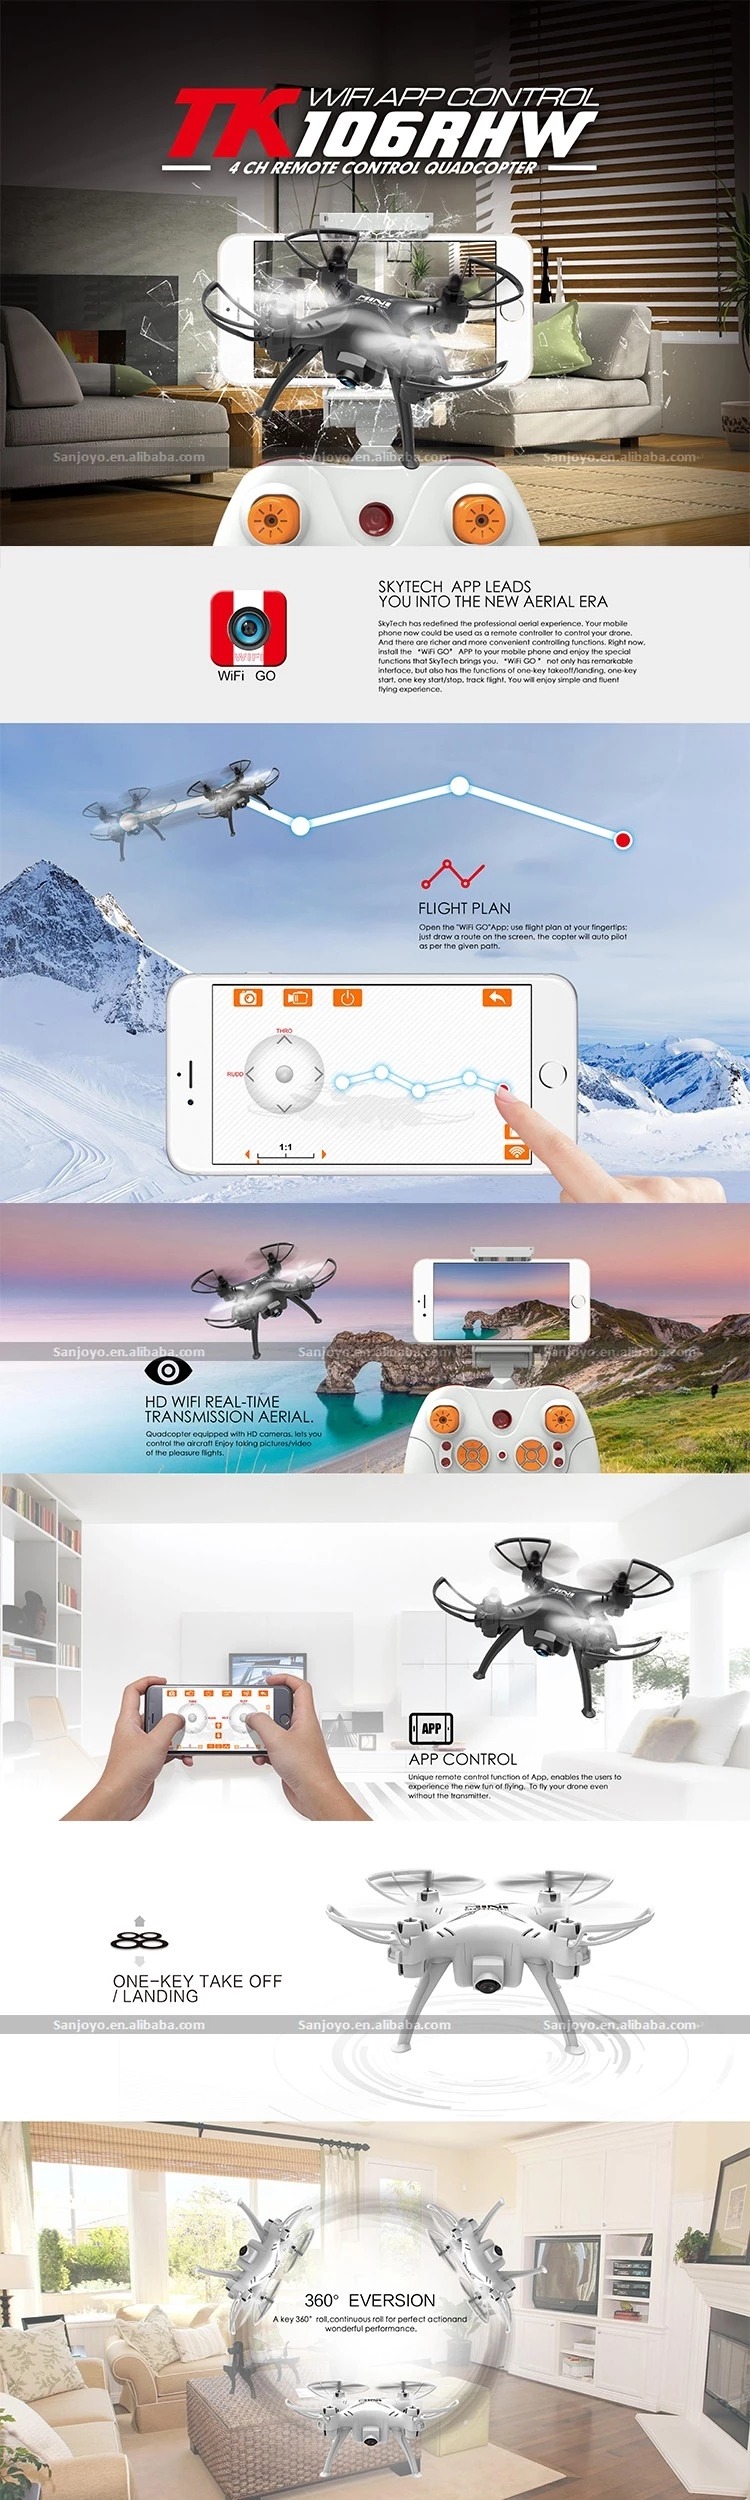 Best Cheap Drone TK106RHW 6-axis 2.4GHz RC Mini Quadcopter With 0.3MP WIFI Camera